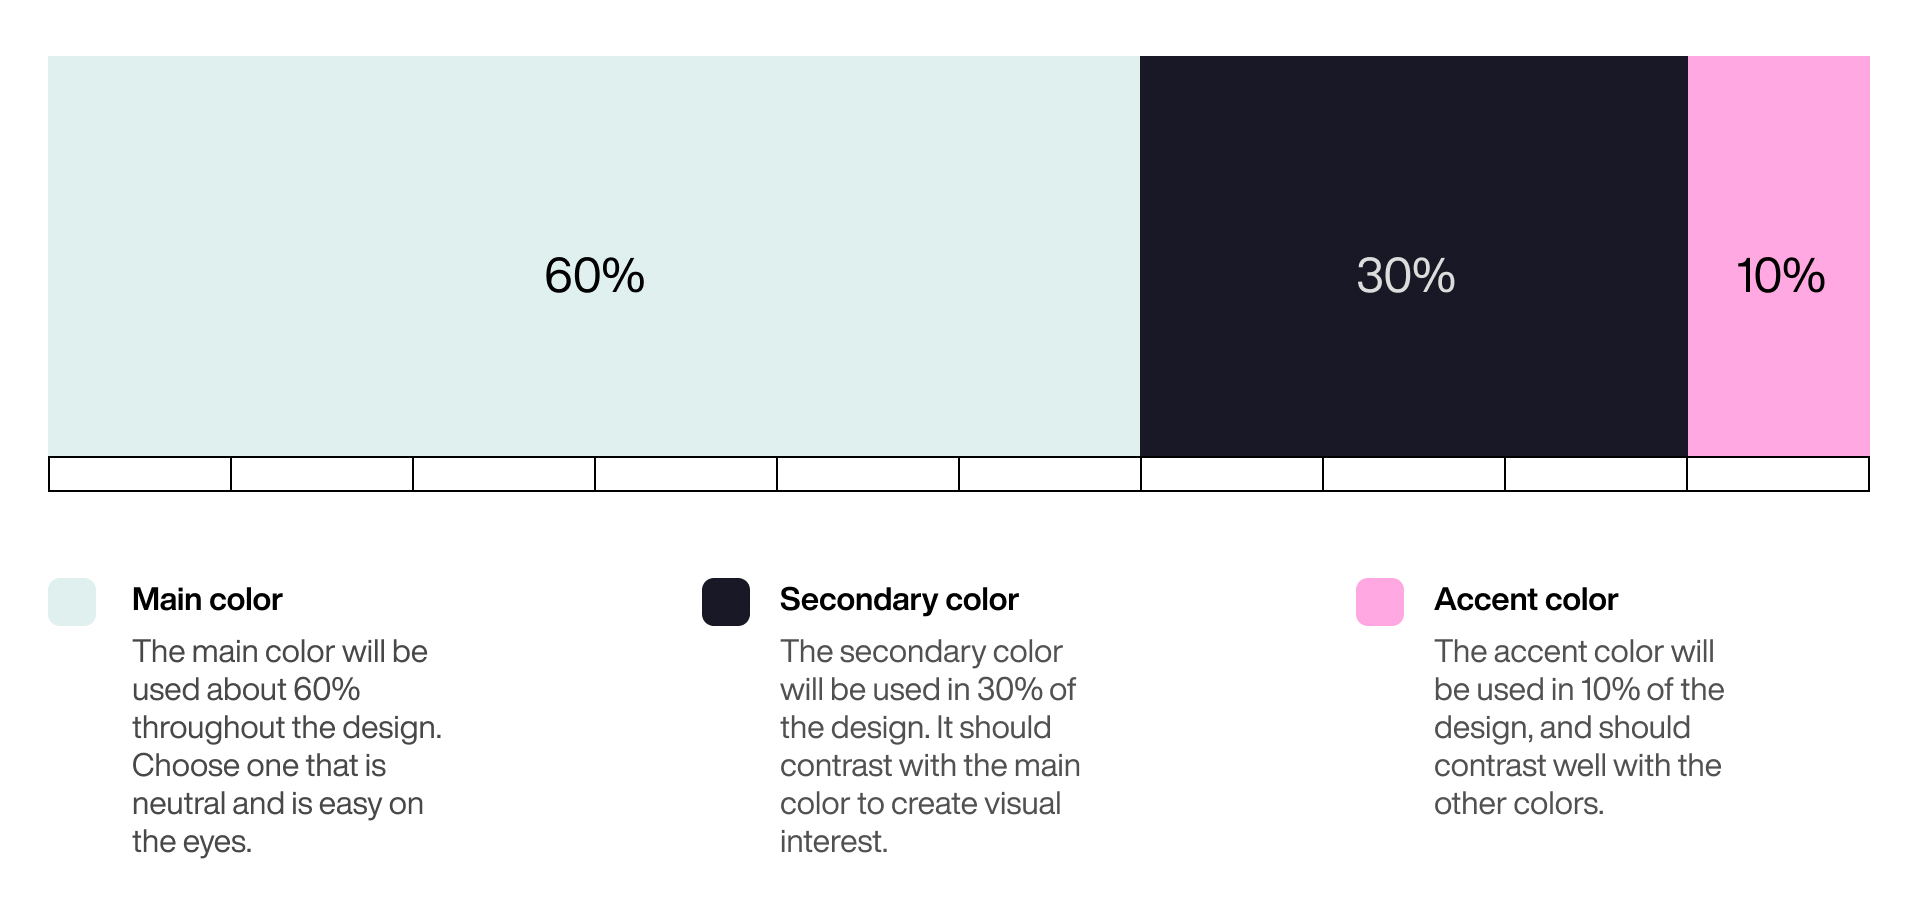 While using the 6:3:1 Rule, designers have to choose a dominant color and use it in 60% of the space, a secondary color in 30% and a final color in the remaining 10%.